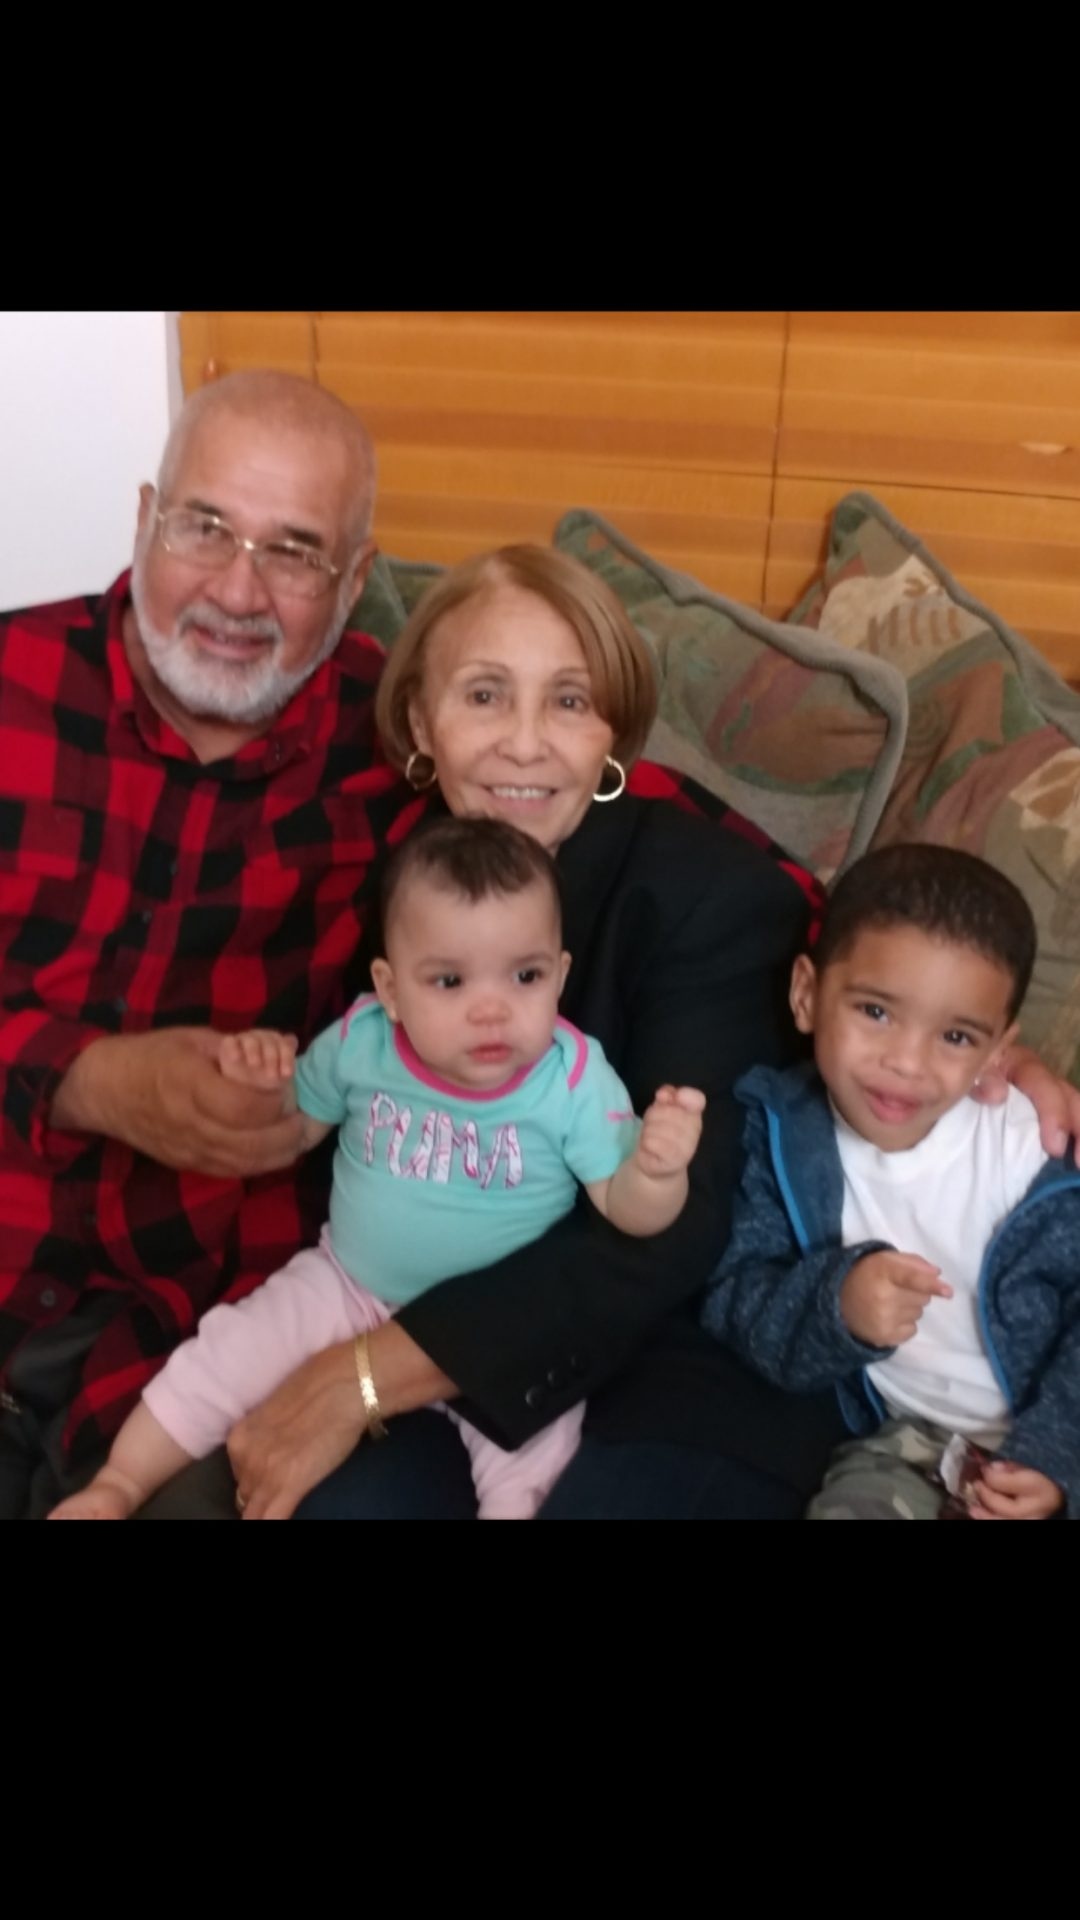 Love you Grandma <br /> Your great grandchildren will never forget you